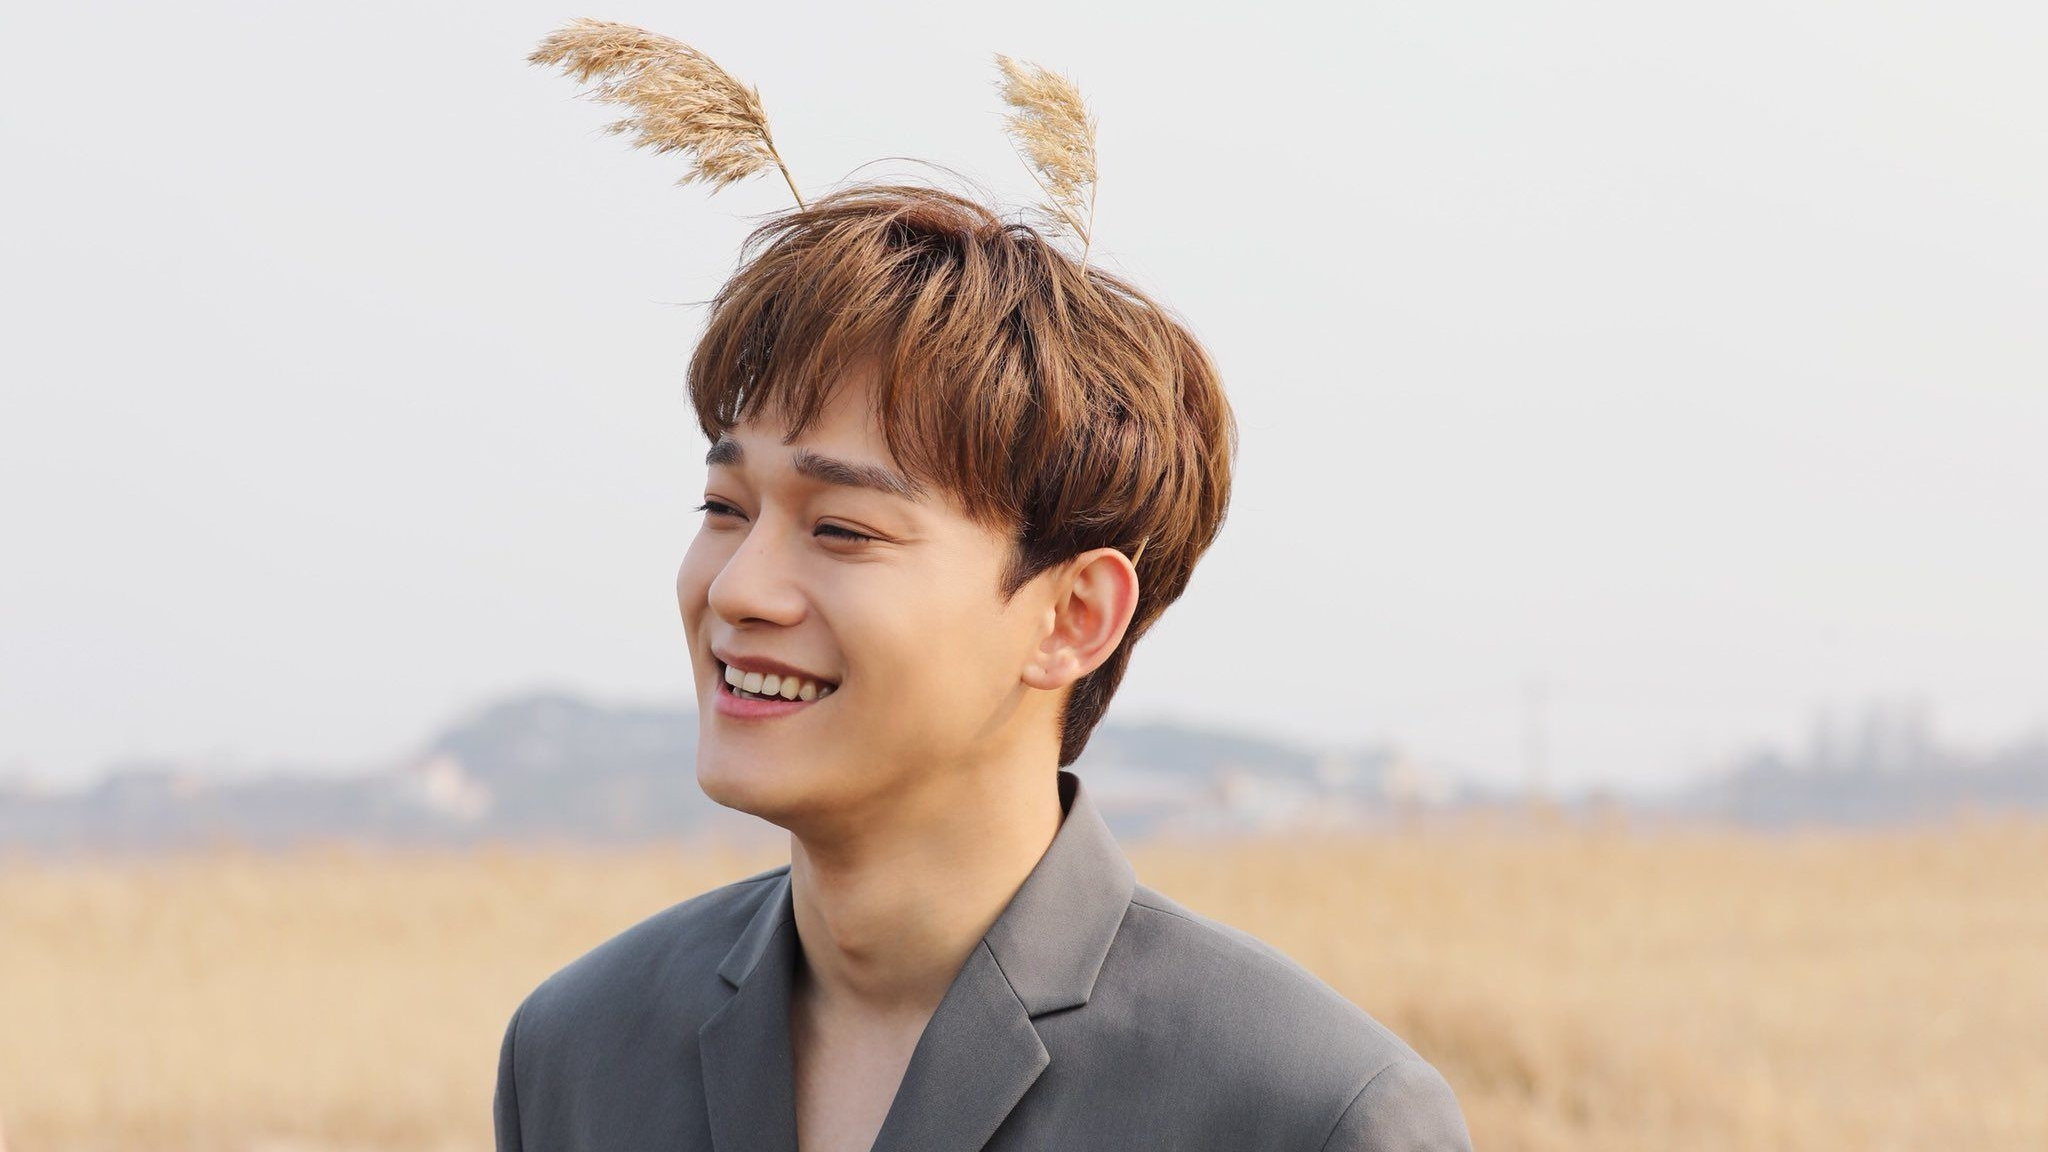 EXO's Chen Officially Enrolls For Military Conscription Today